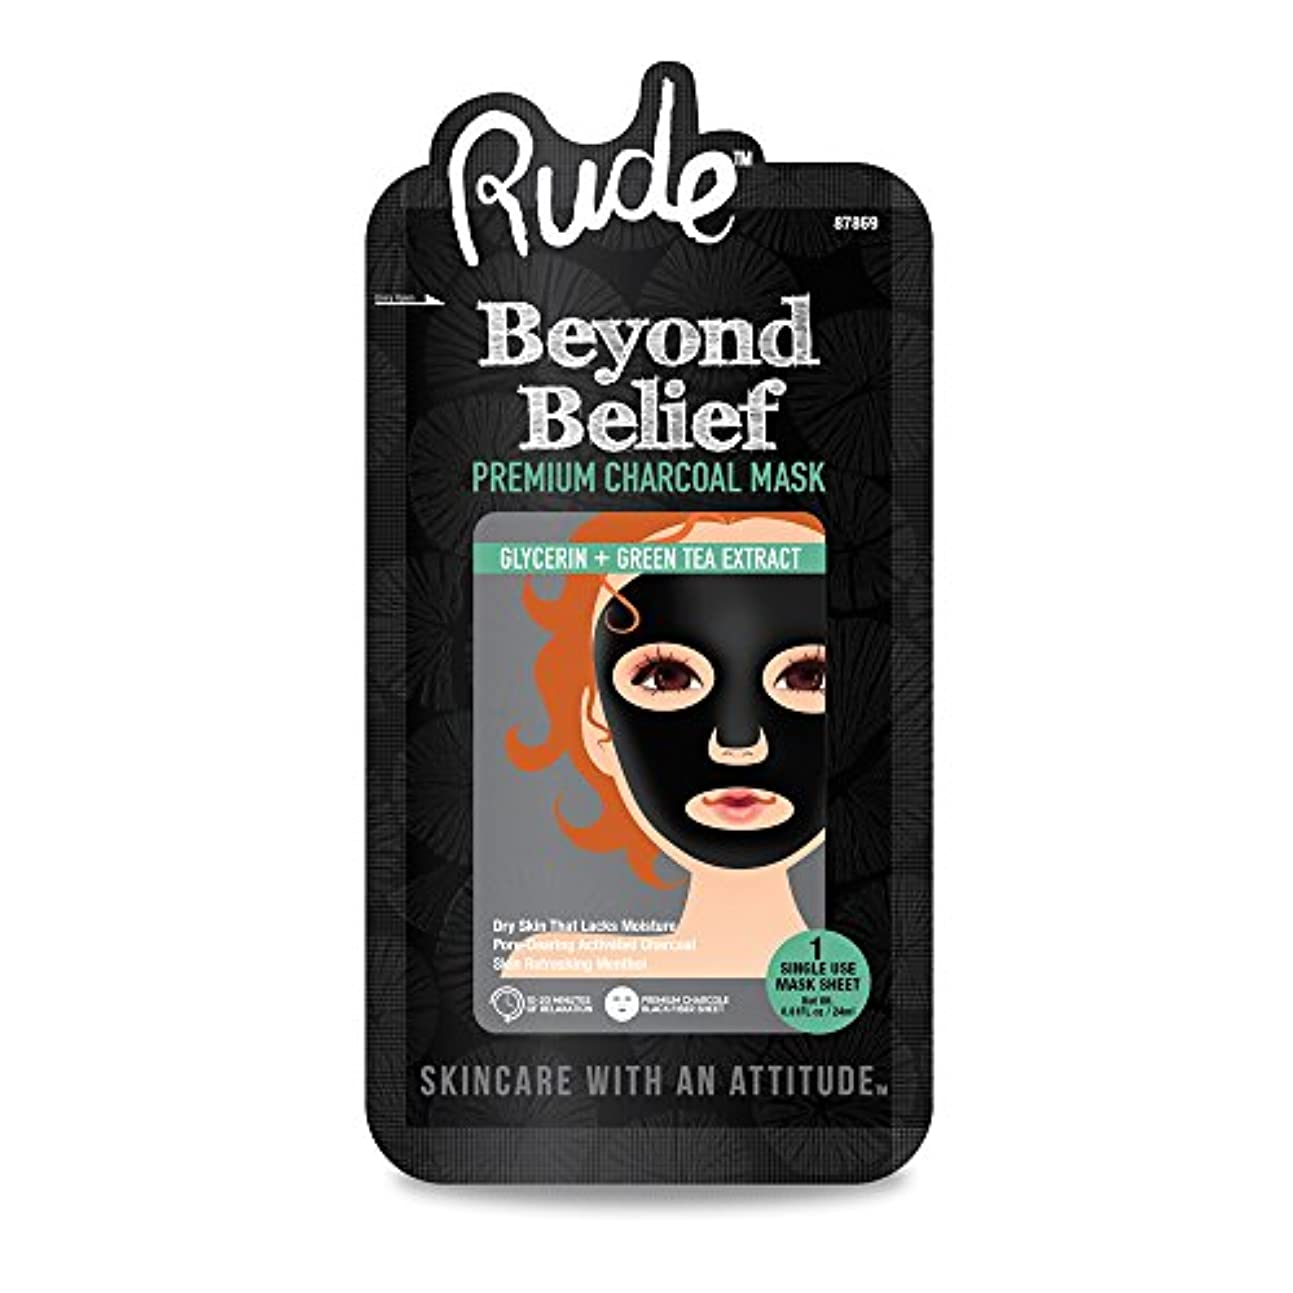 怖がって死ぬ不安定な論理(3 Pack) RUDE Beyond Belief Purifying Charcoal Face Mask (並行輸入品)